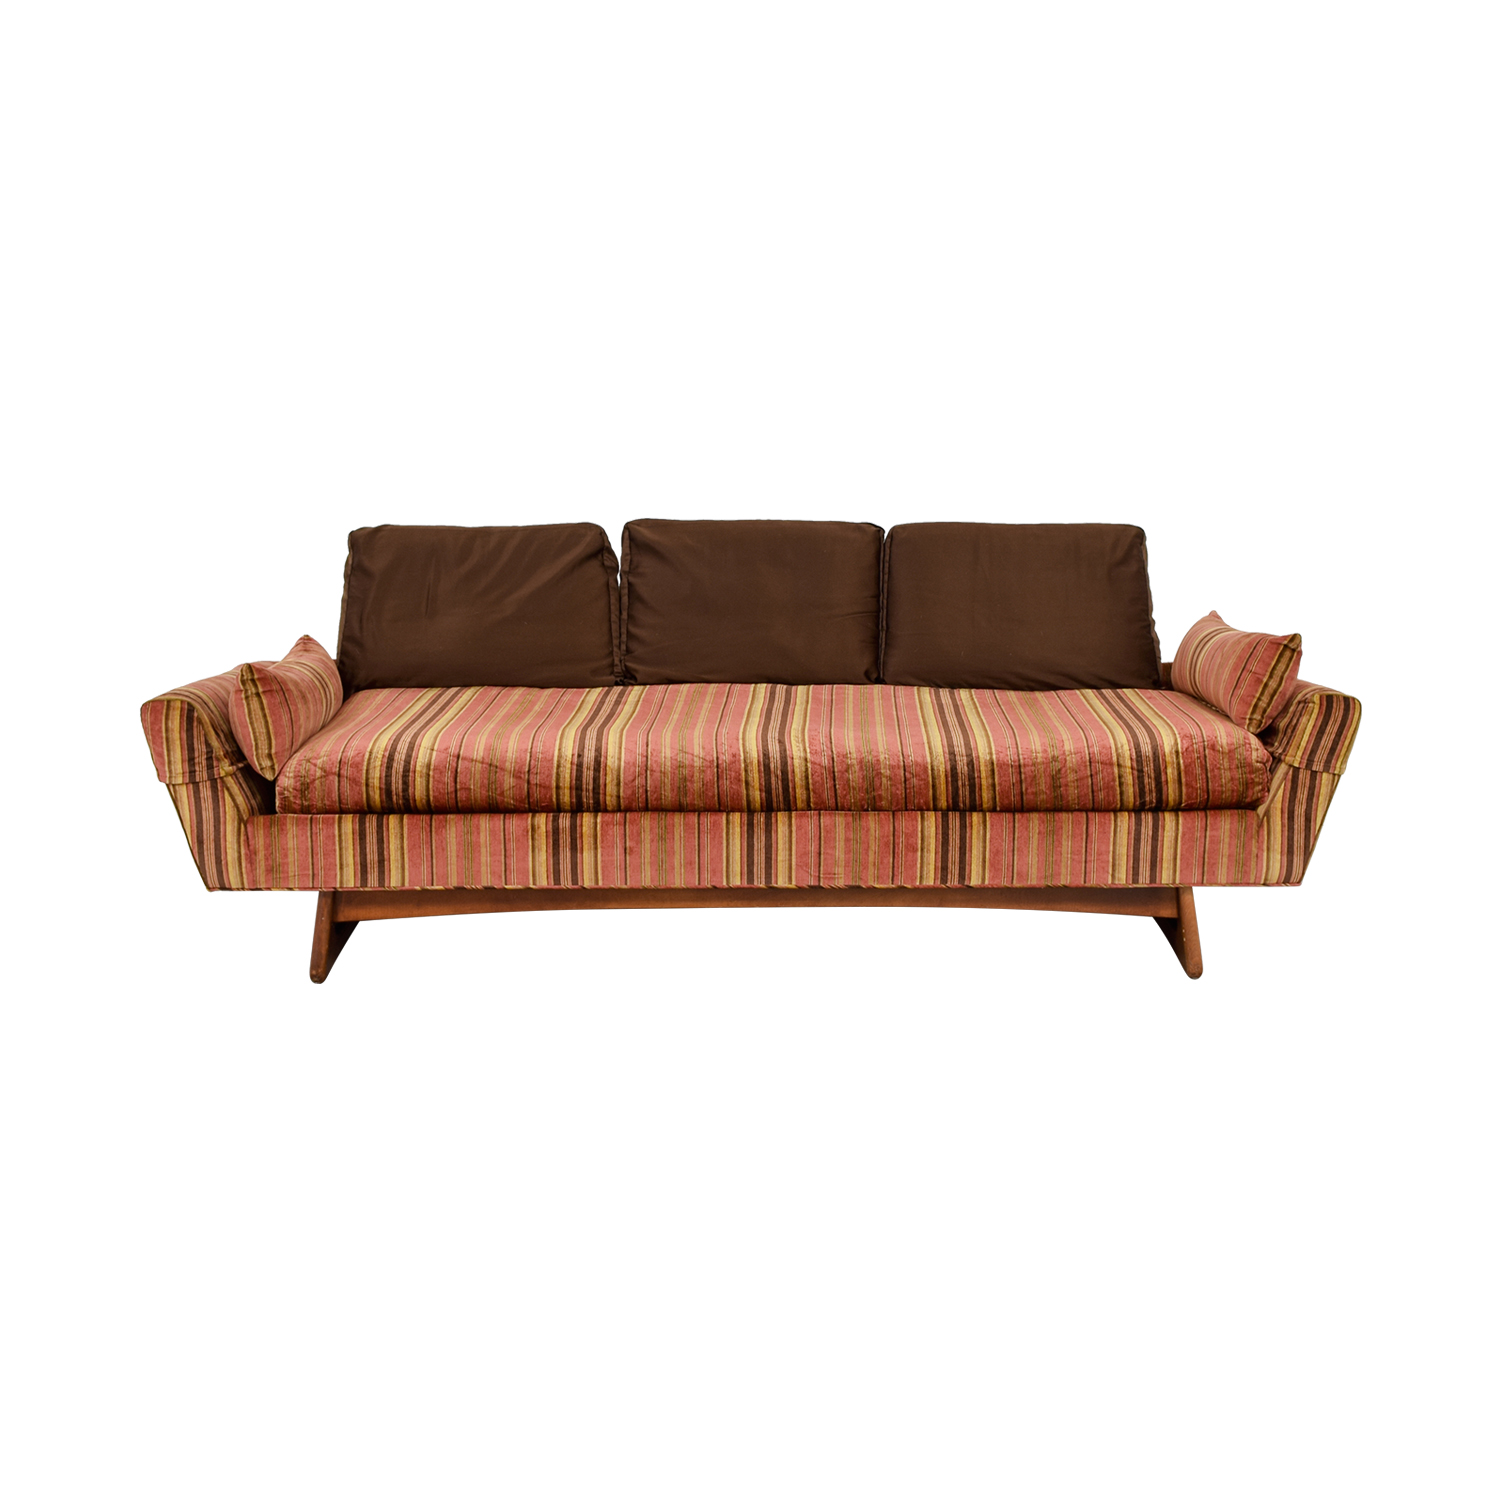 shop Adrian Pearsall MCM Rose and Brown Striped Sofa Adrian Pearsall Sofas